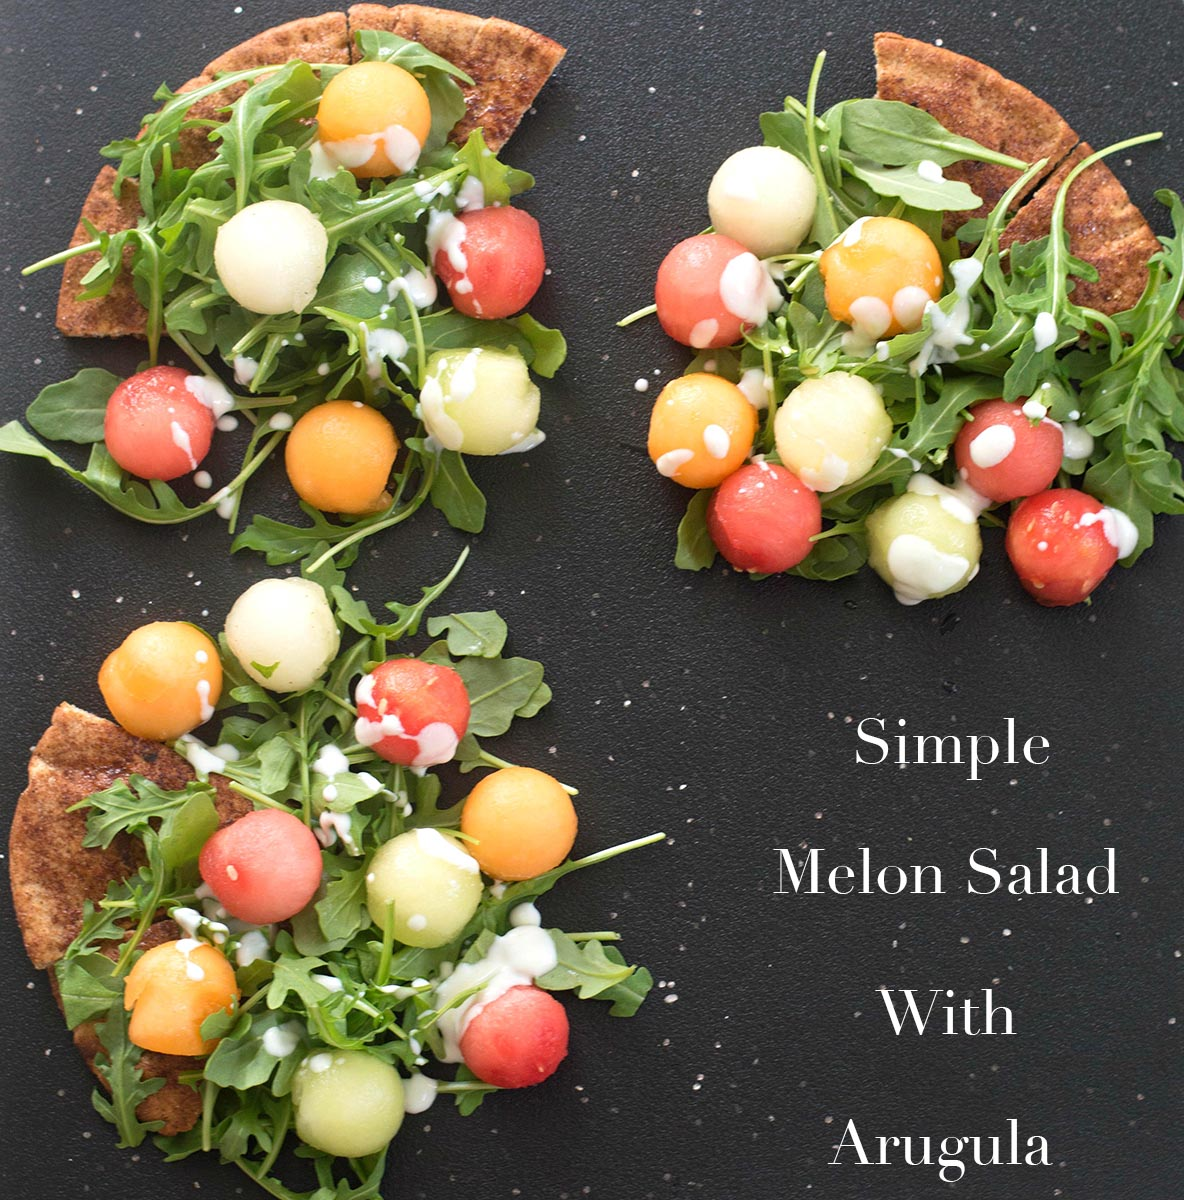 Overhead view of melon balls on arugula and pita bread in 3 of the 4 corners